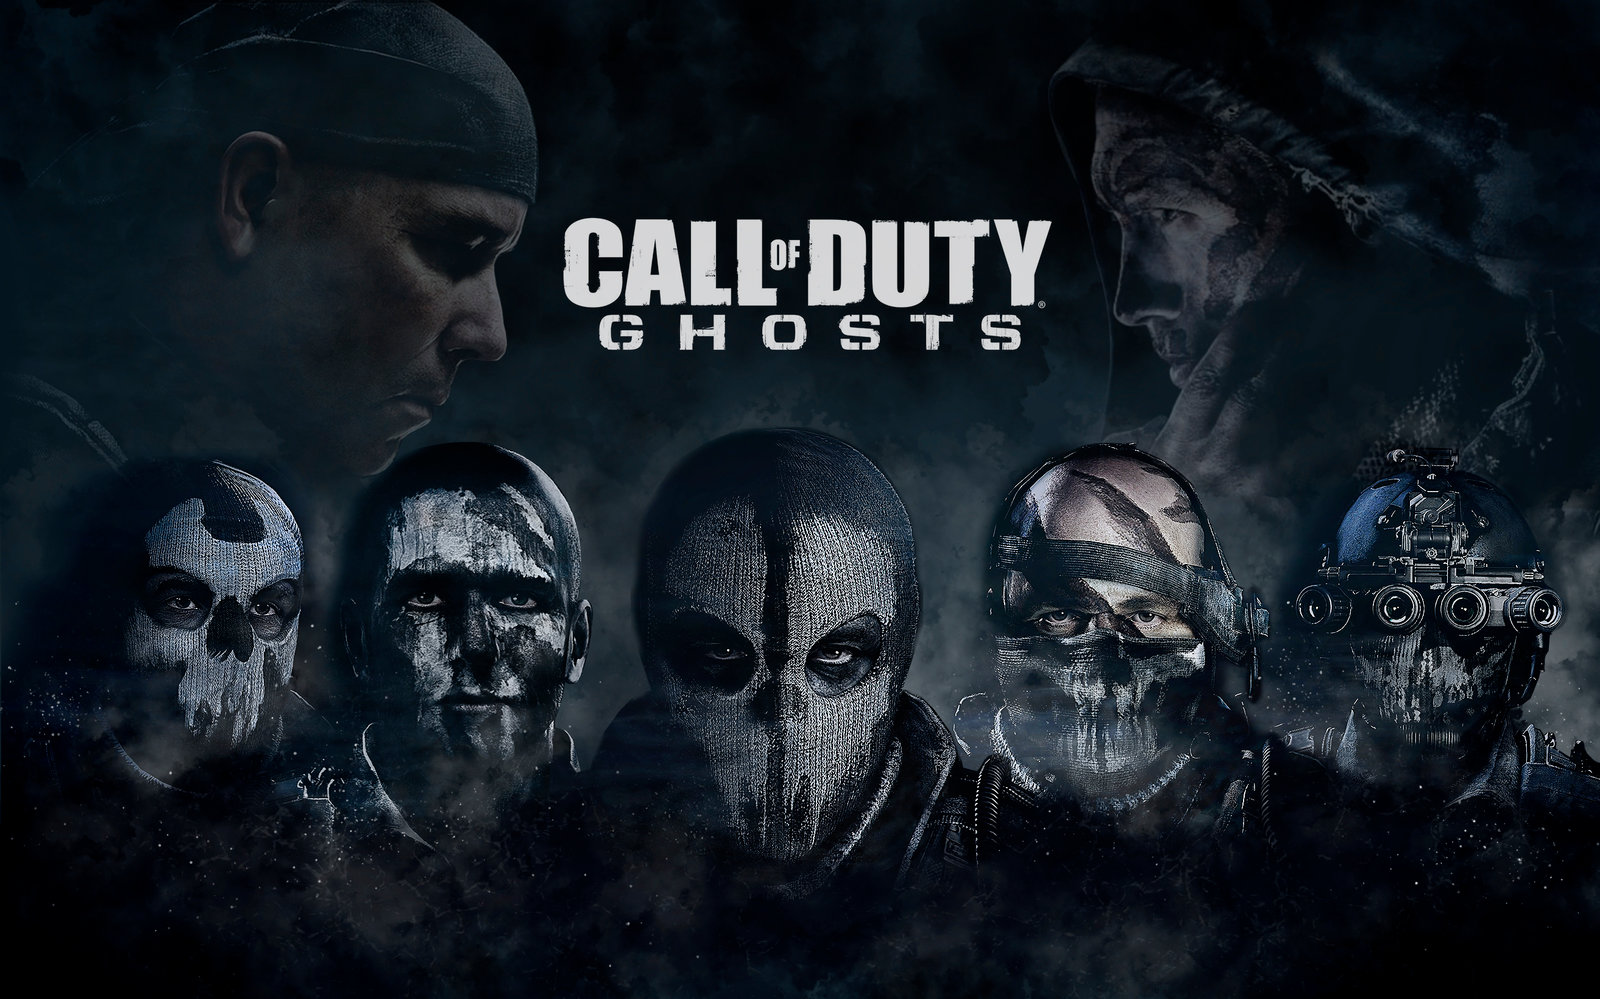 Wallpaper Call Of Duty Ghosts Wallpapersafari HD Wallpapers Download Free Images Wallpaper [1000image.com]